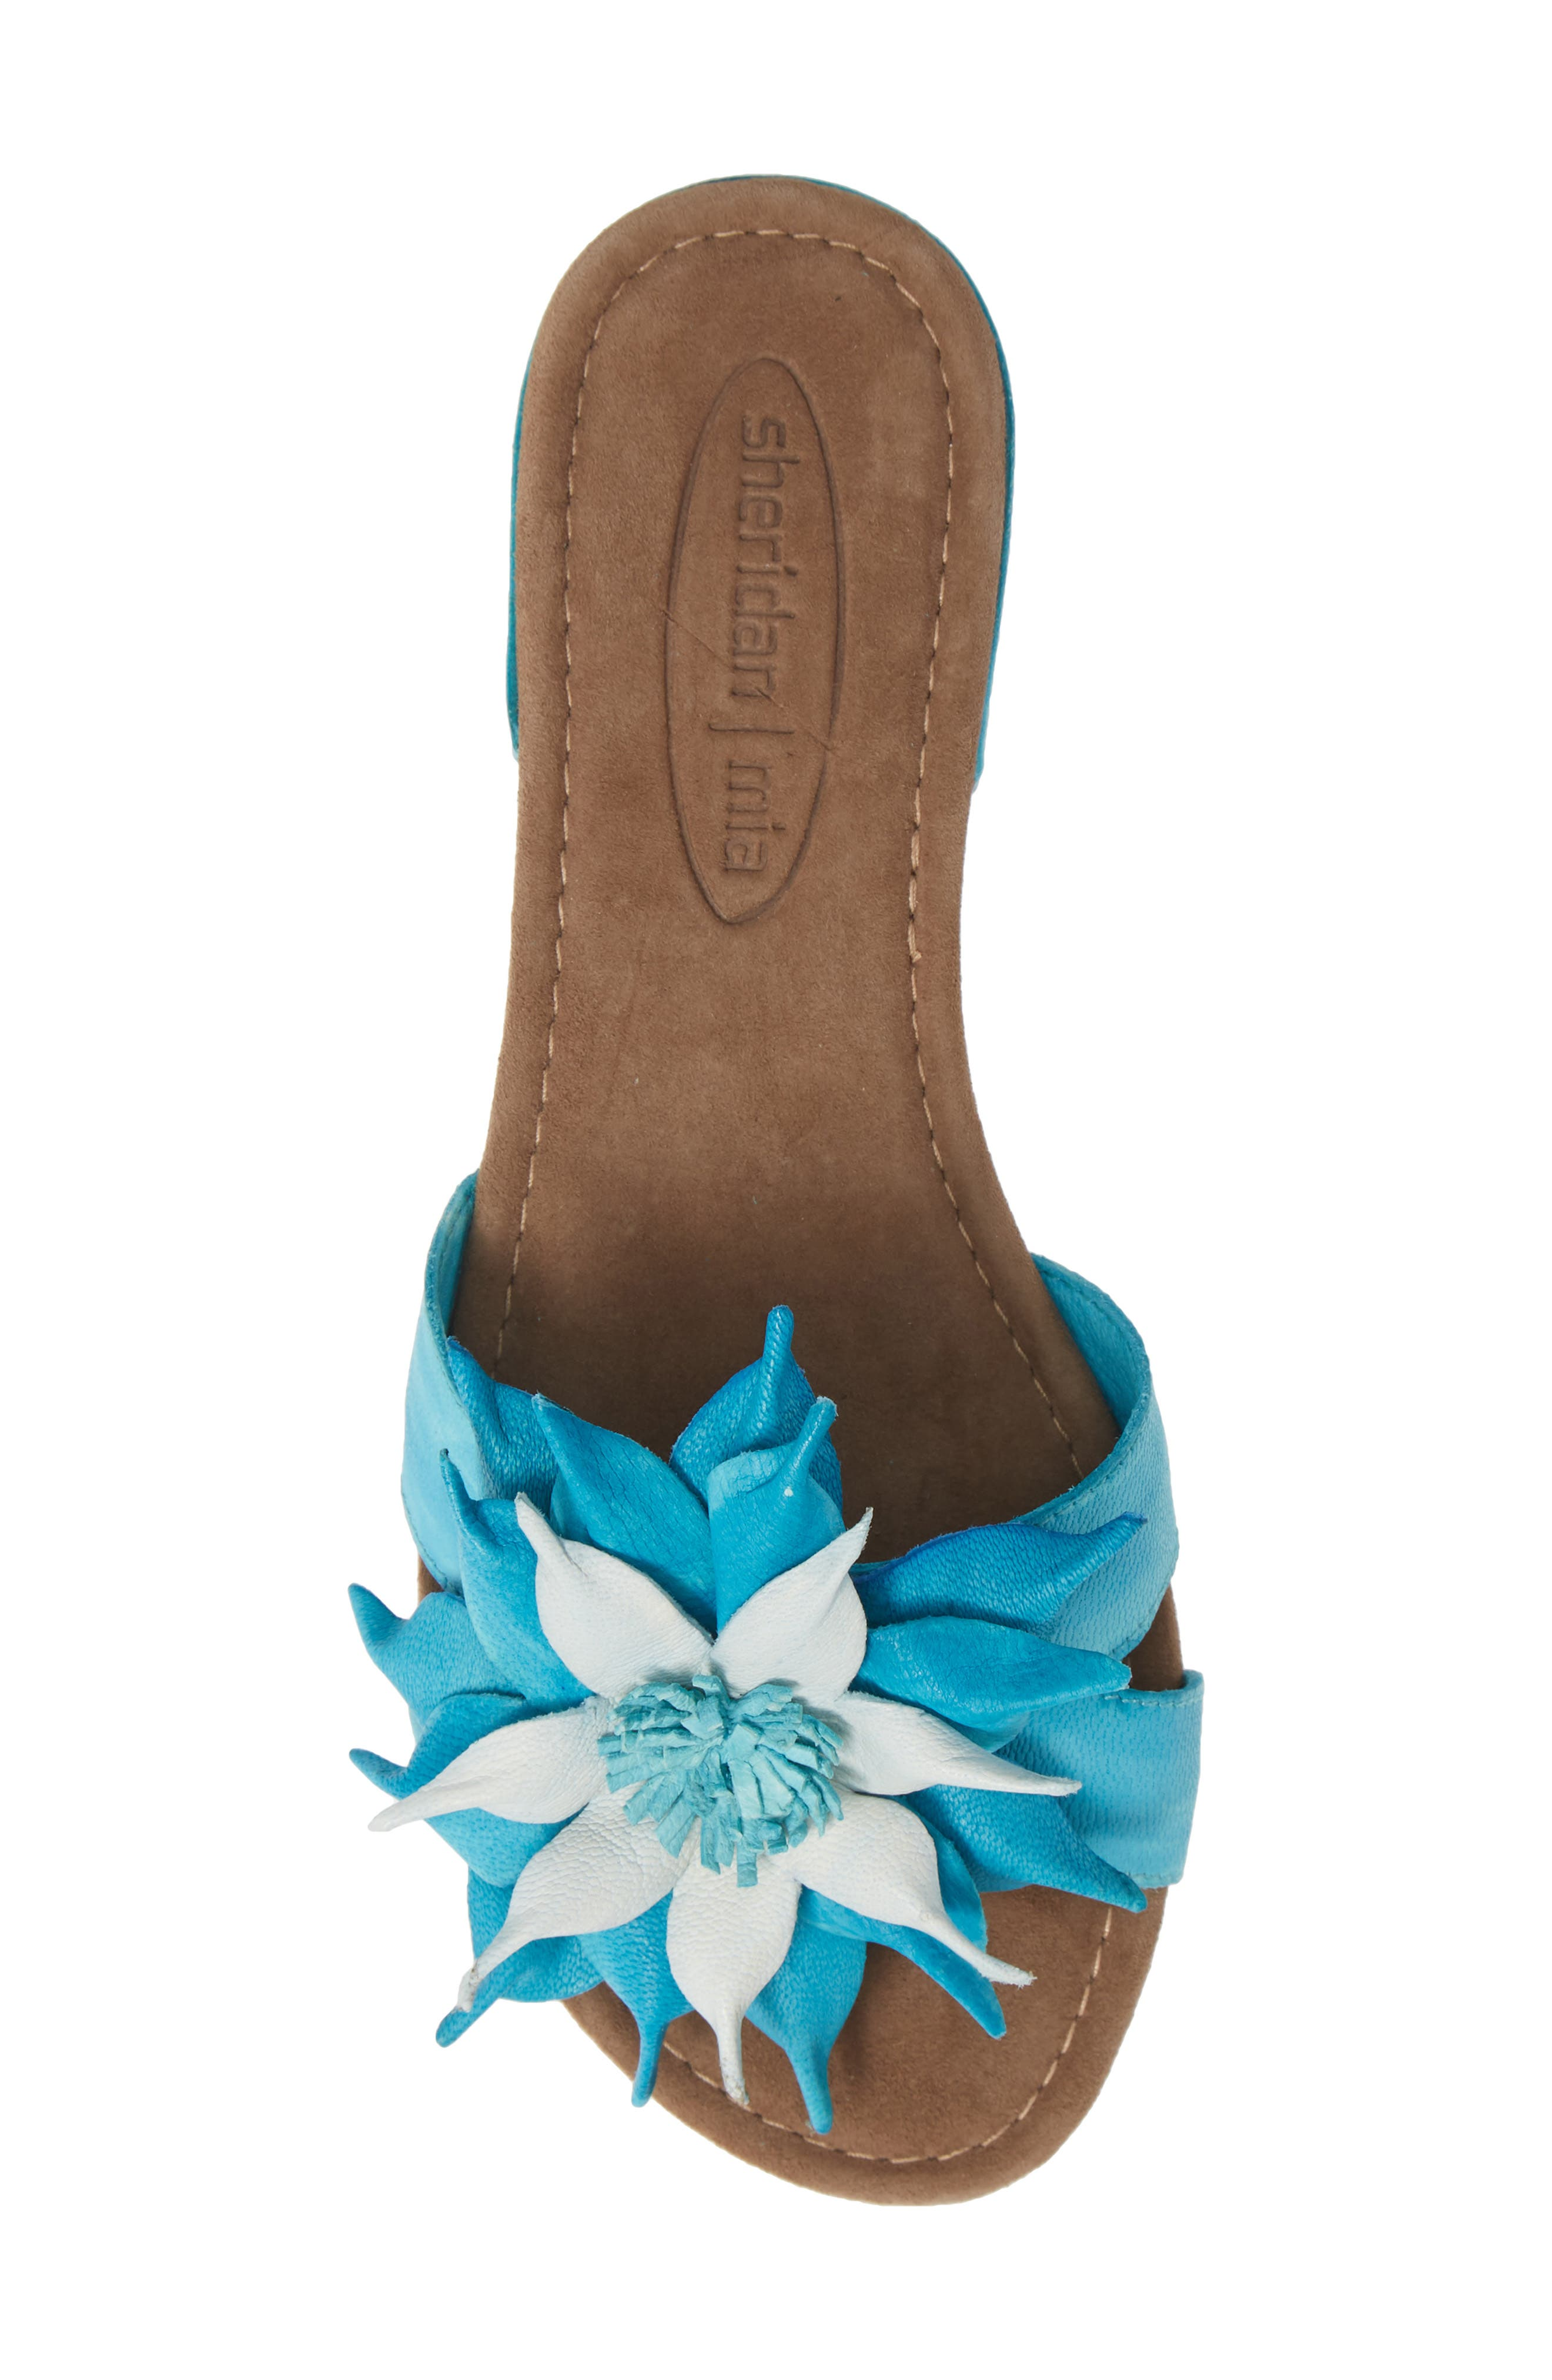 Stella Sandal,                             Alternate thumbnail 5, color,                             TURQUOISE LEATHER